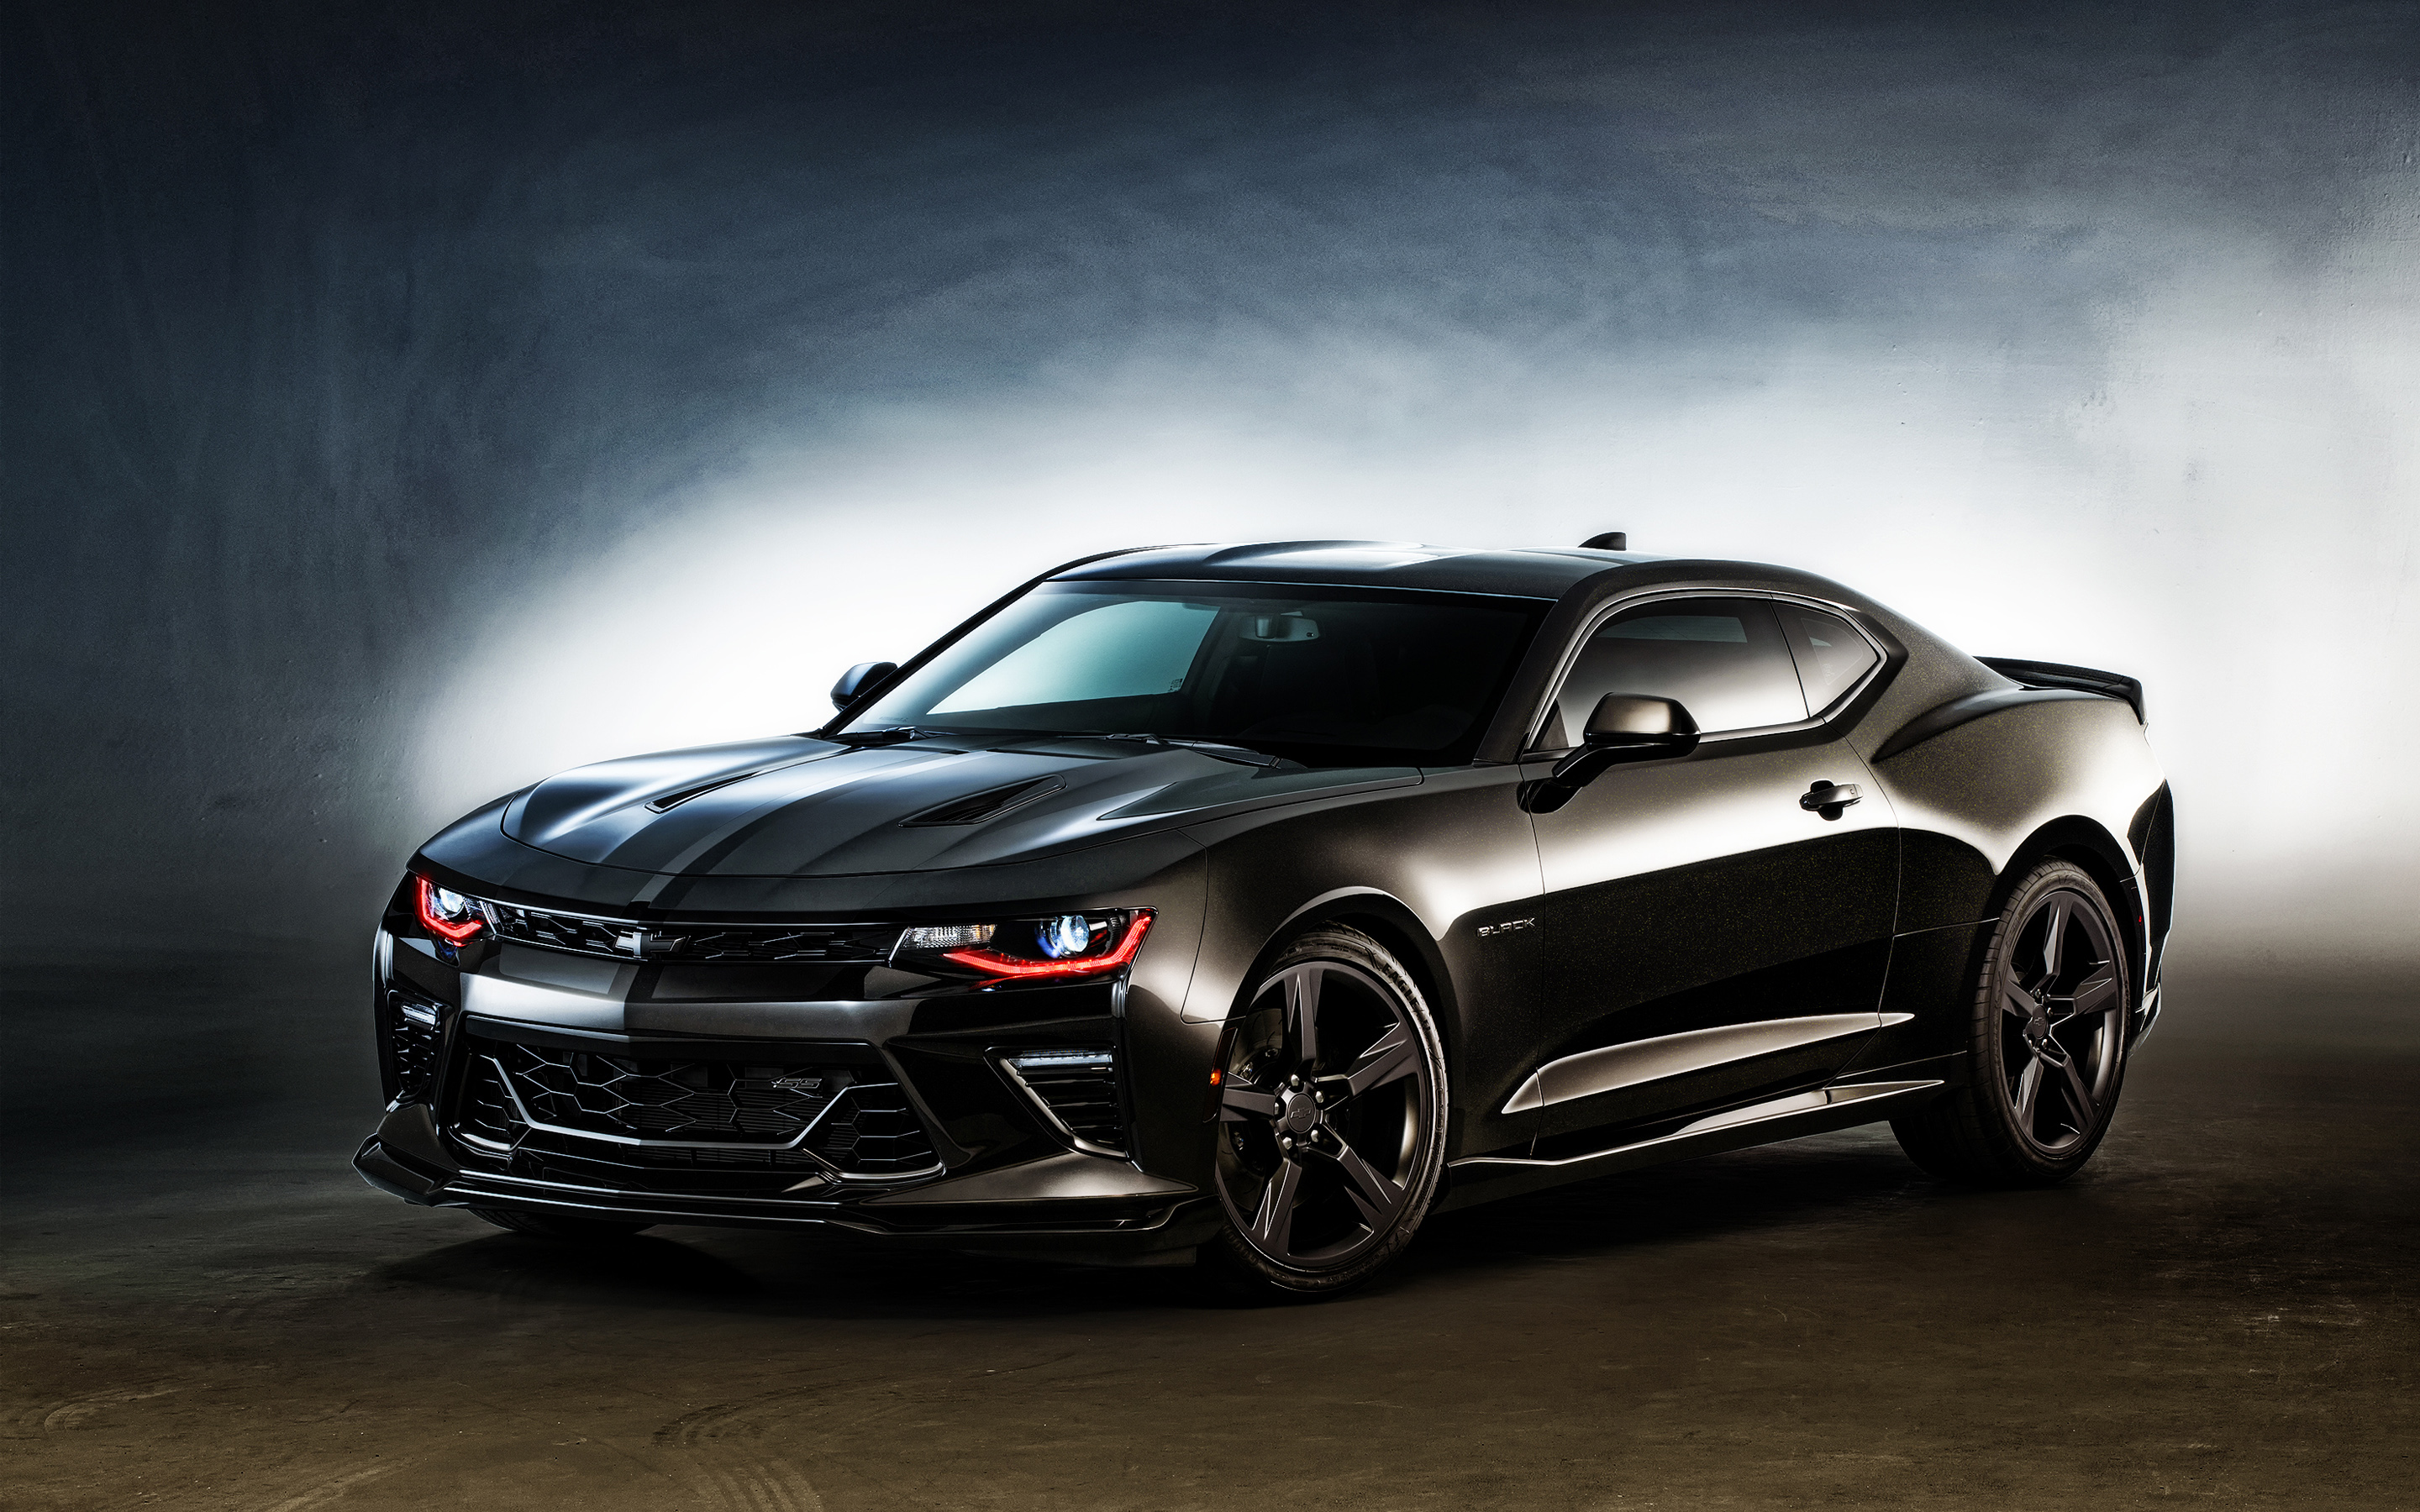 2016 Chevrolet Camaro Black Wallpaper HD Car Wallpapers ID 5934 2880x1800